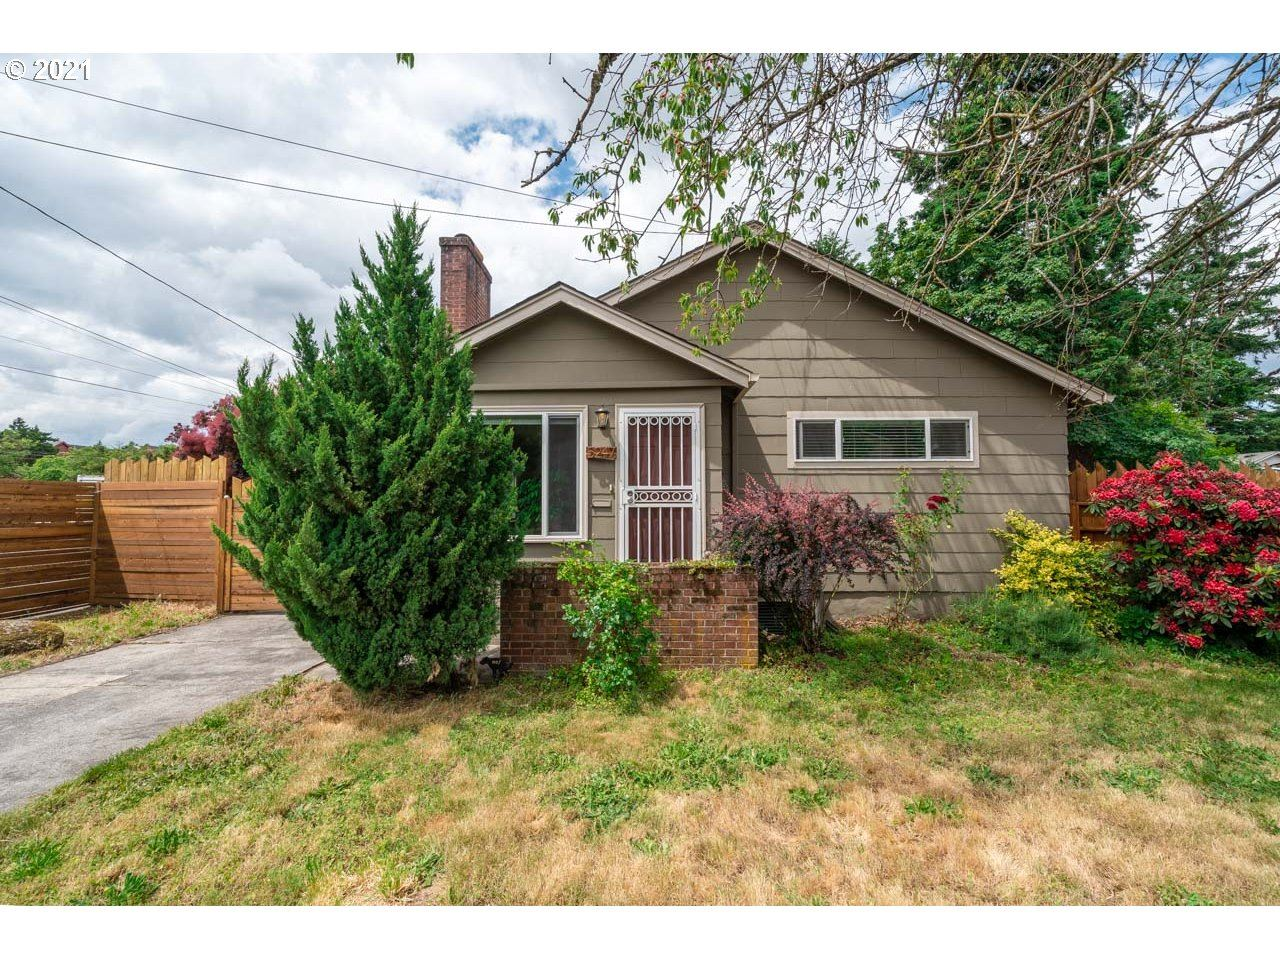 5247 SE 79TH AVE, Portland, OR 97206 - MLS#: 21694213